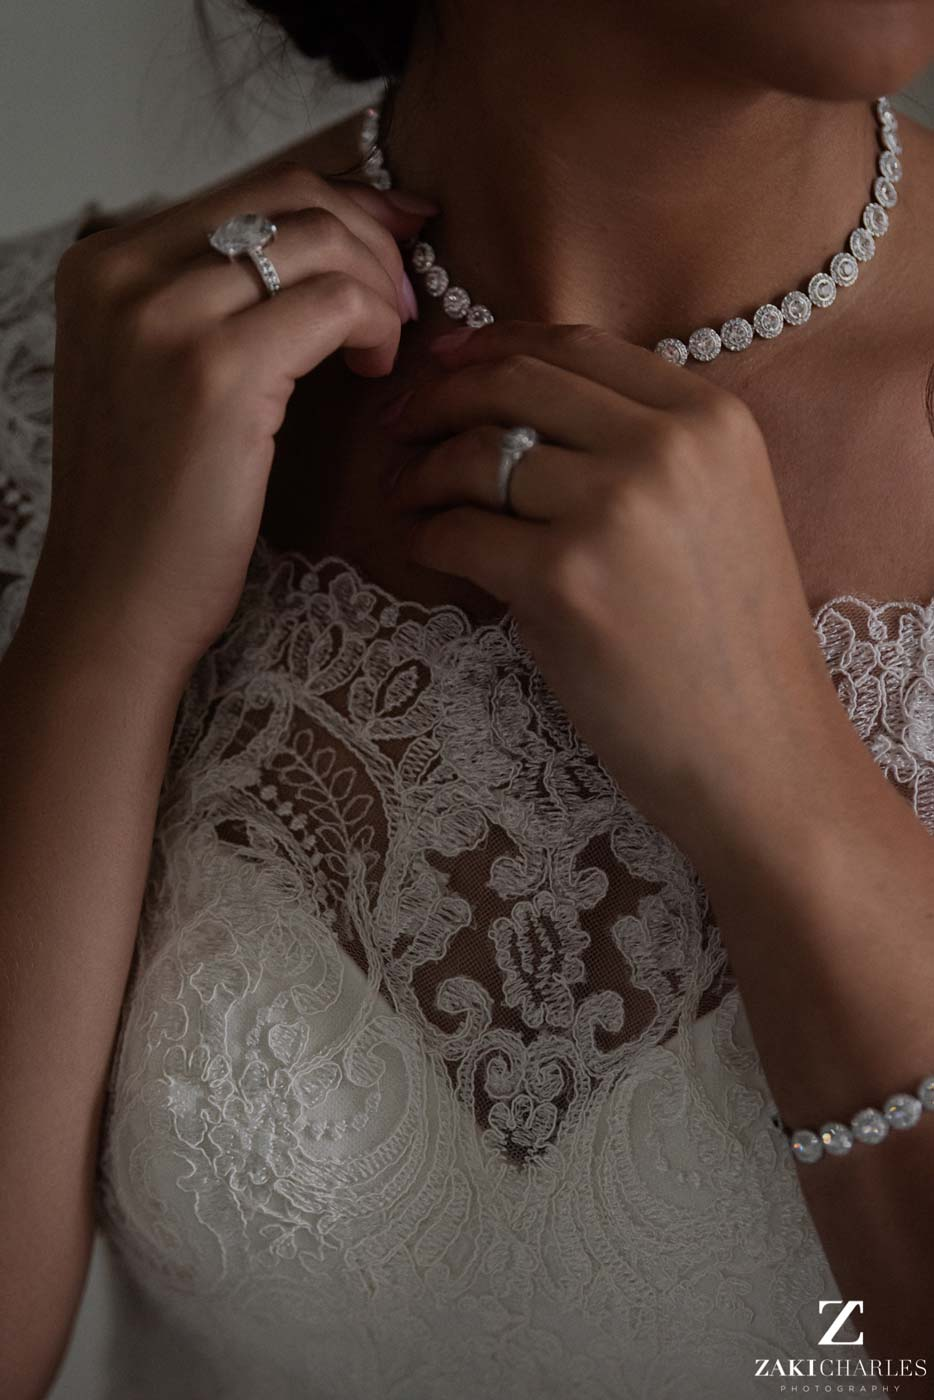 Detail of jewelry on the bride photo 2